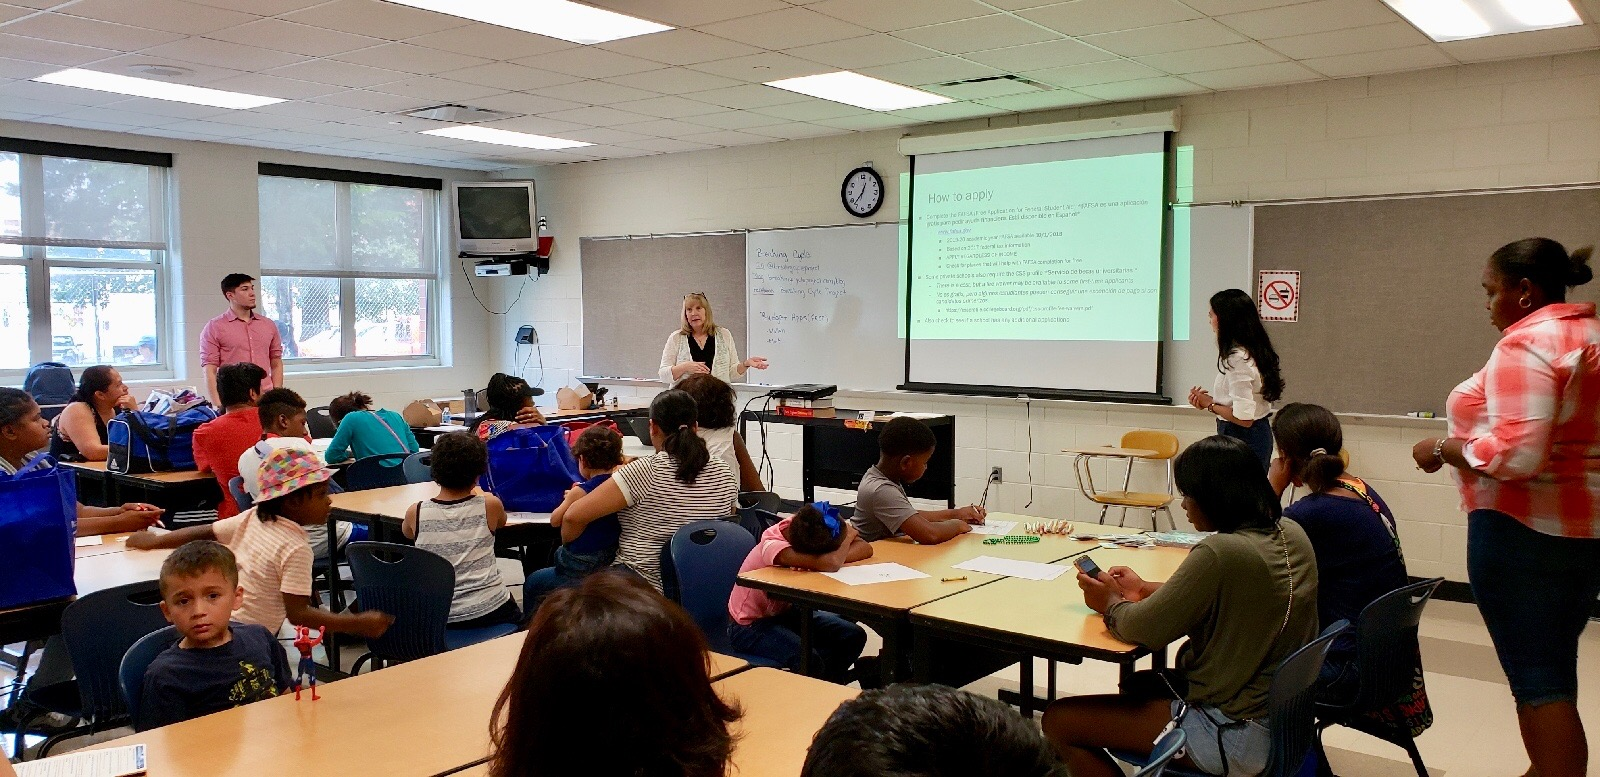 Our presentation was open to parents and children no matter what age — it's important to start the process early!